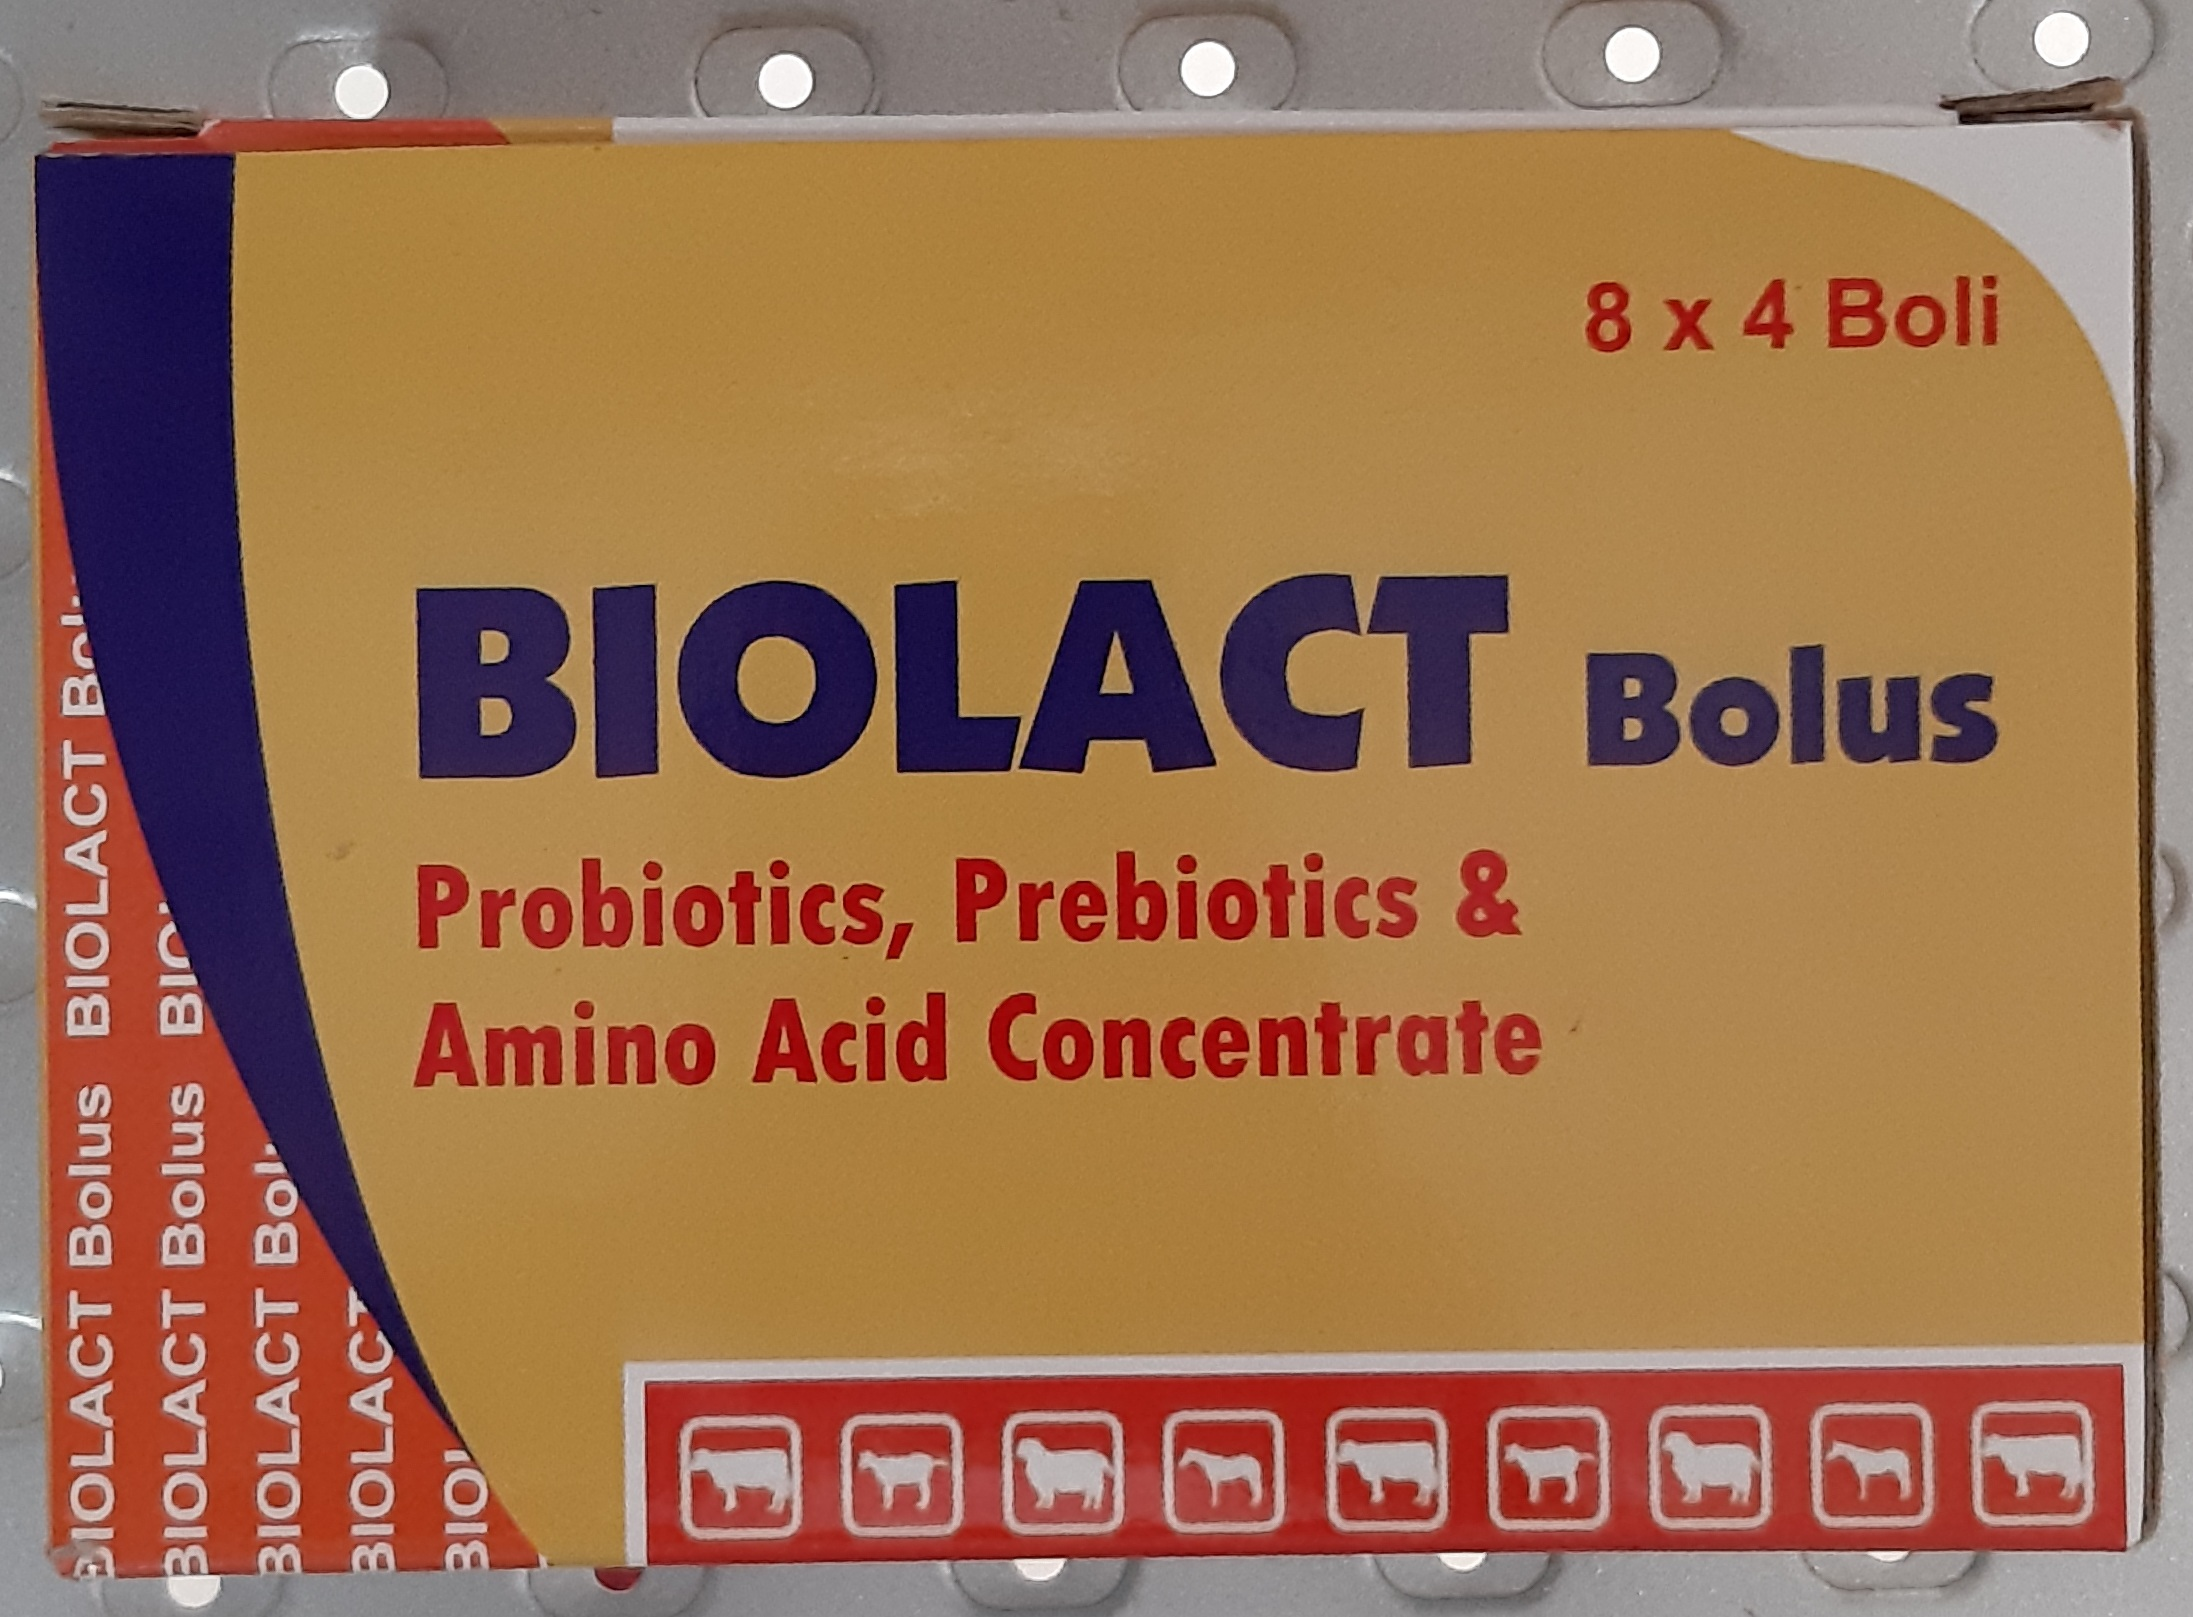 BIOLACT BOLUS (24 pieces)